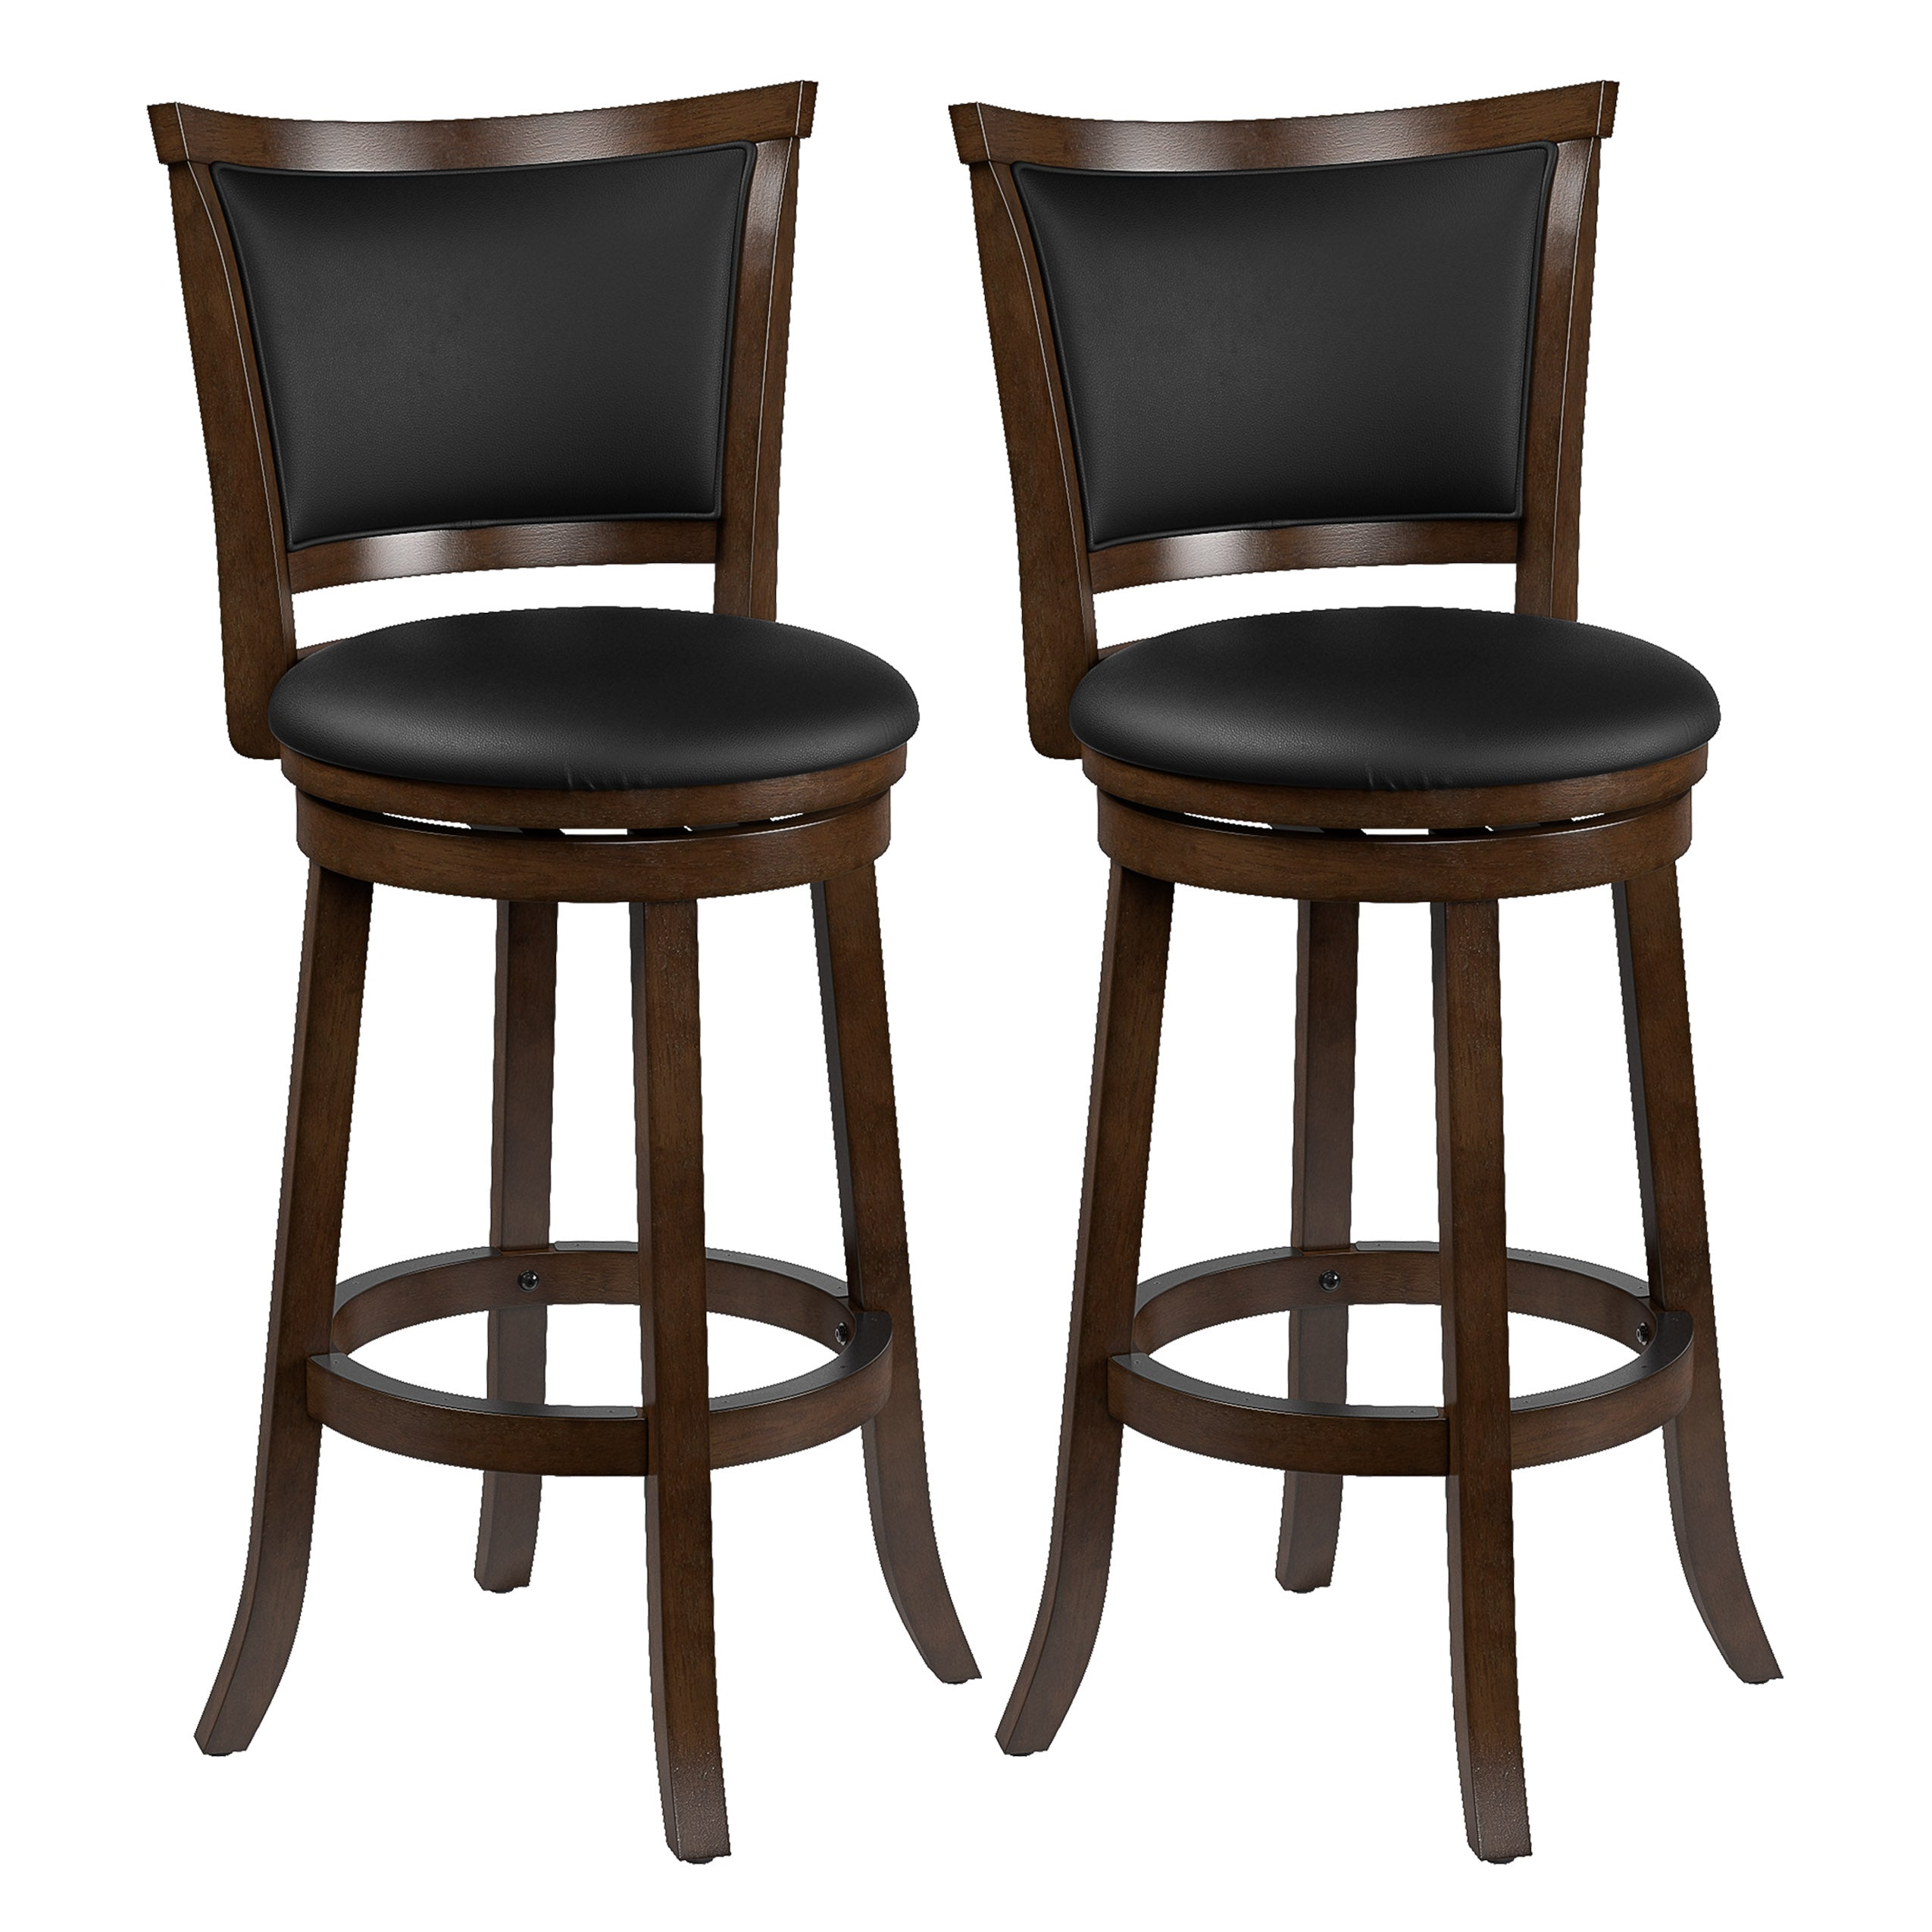 Enjoyable Bar Height Wood Bar Stools With Bonded Leather Seat And Backrest Set Of 2 Evergreenethics Interior Chair Design Evergreenethicsorg